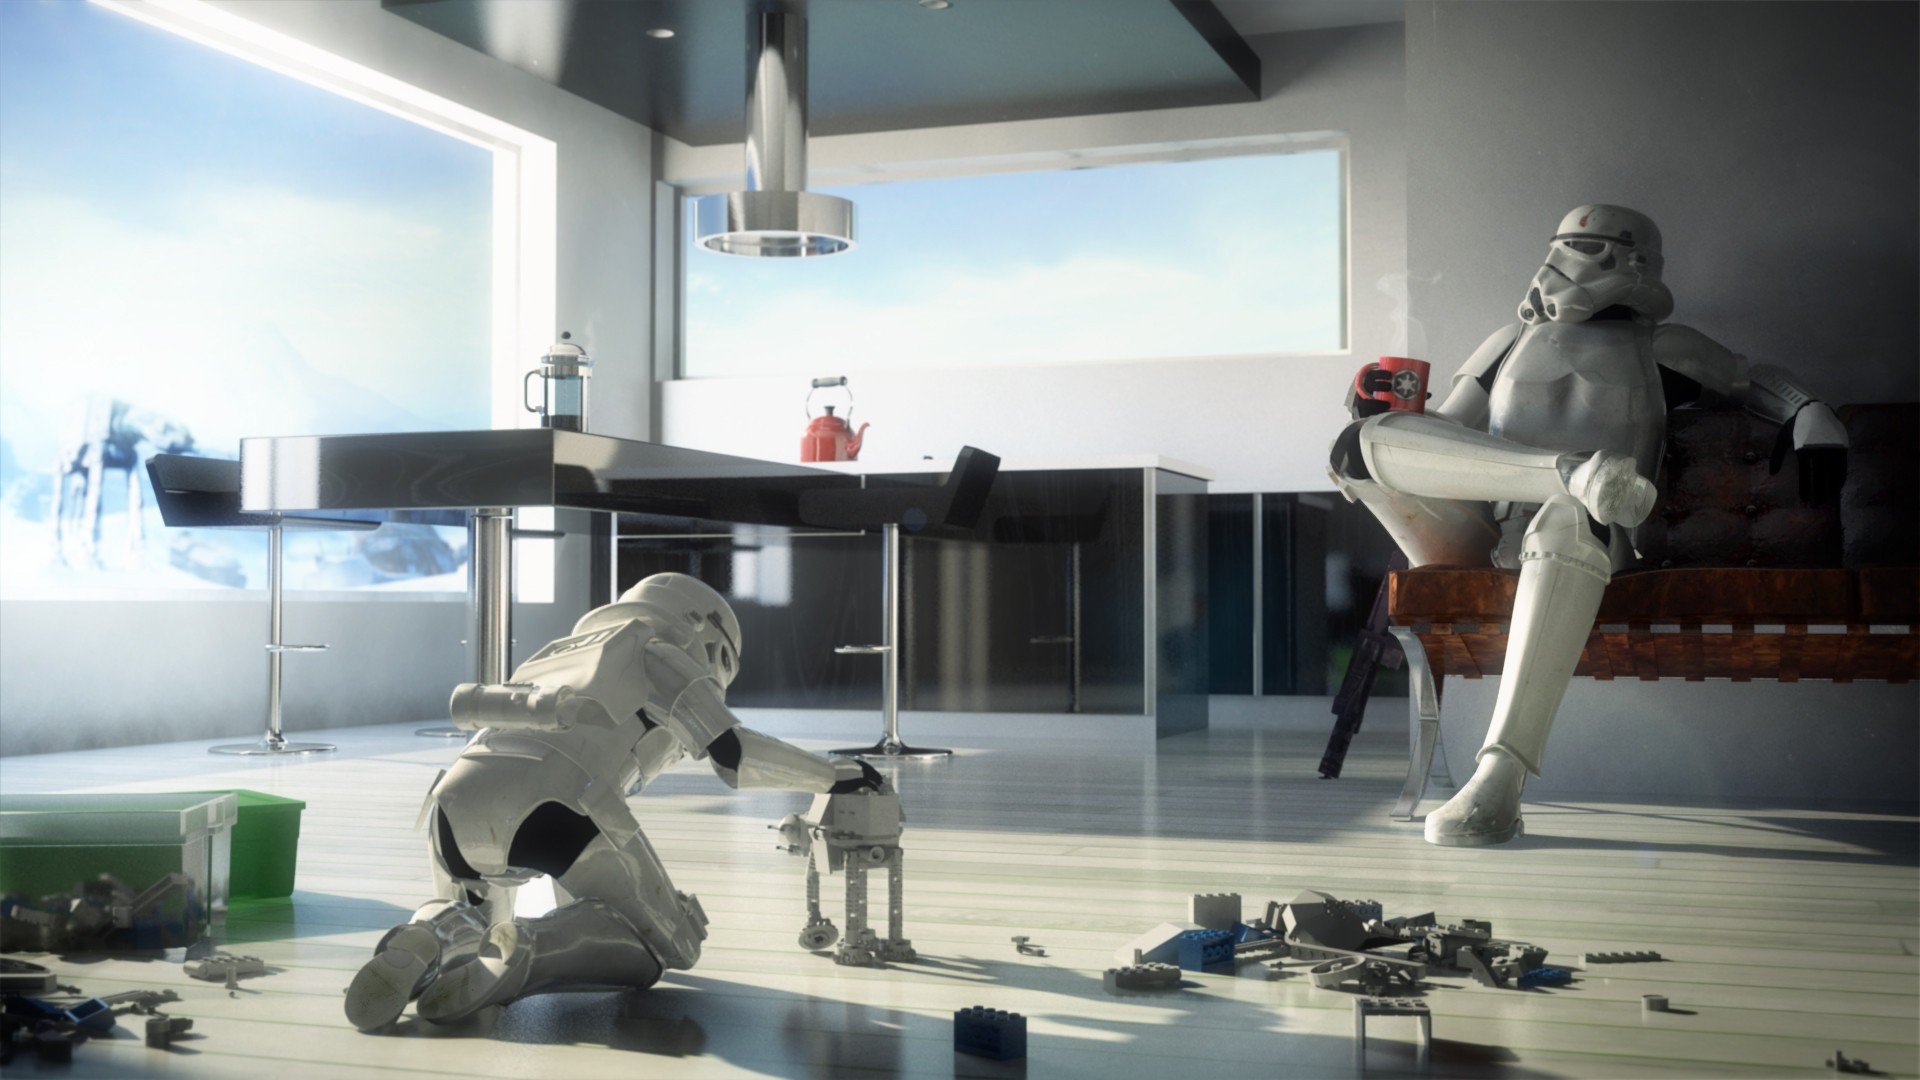 Science Wallpaper Bedroom Funny Family And Star Wars Image On We Heart It